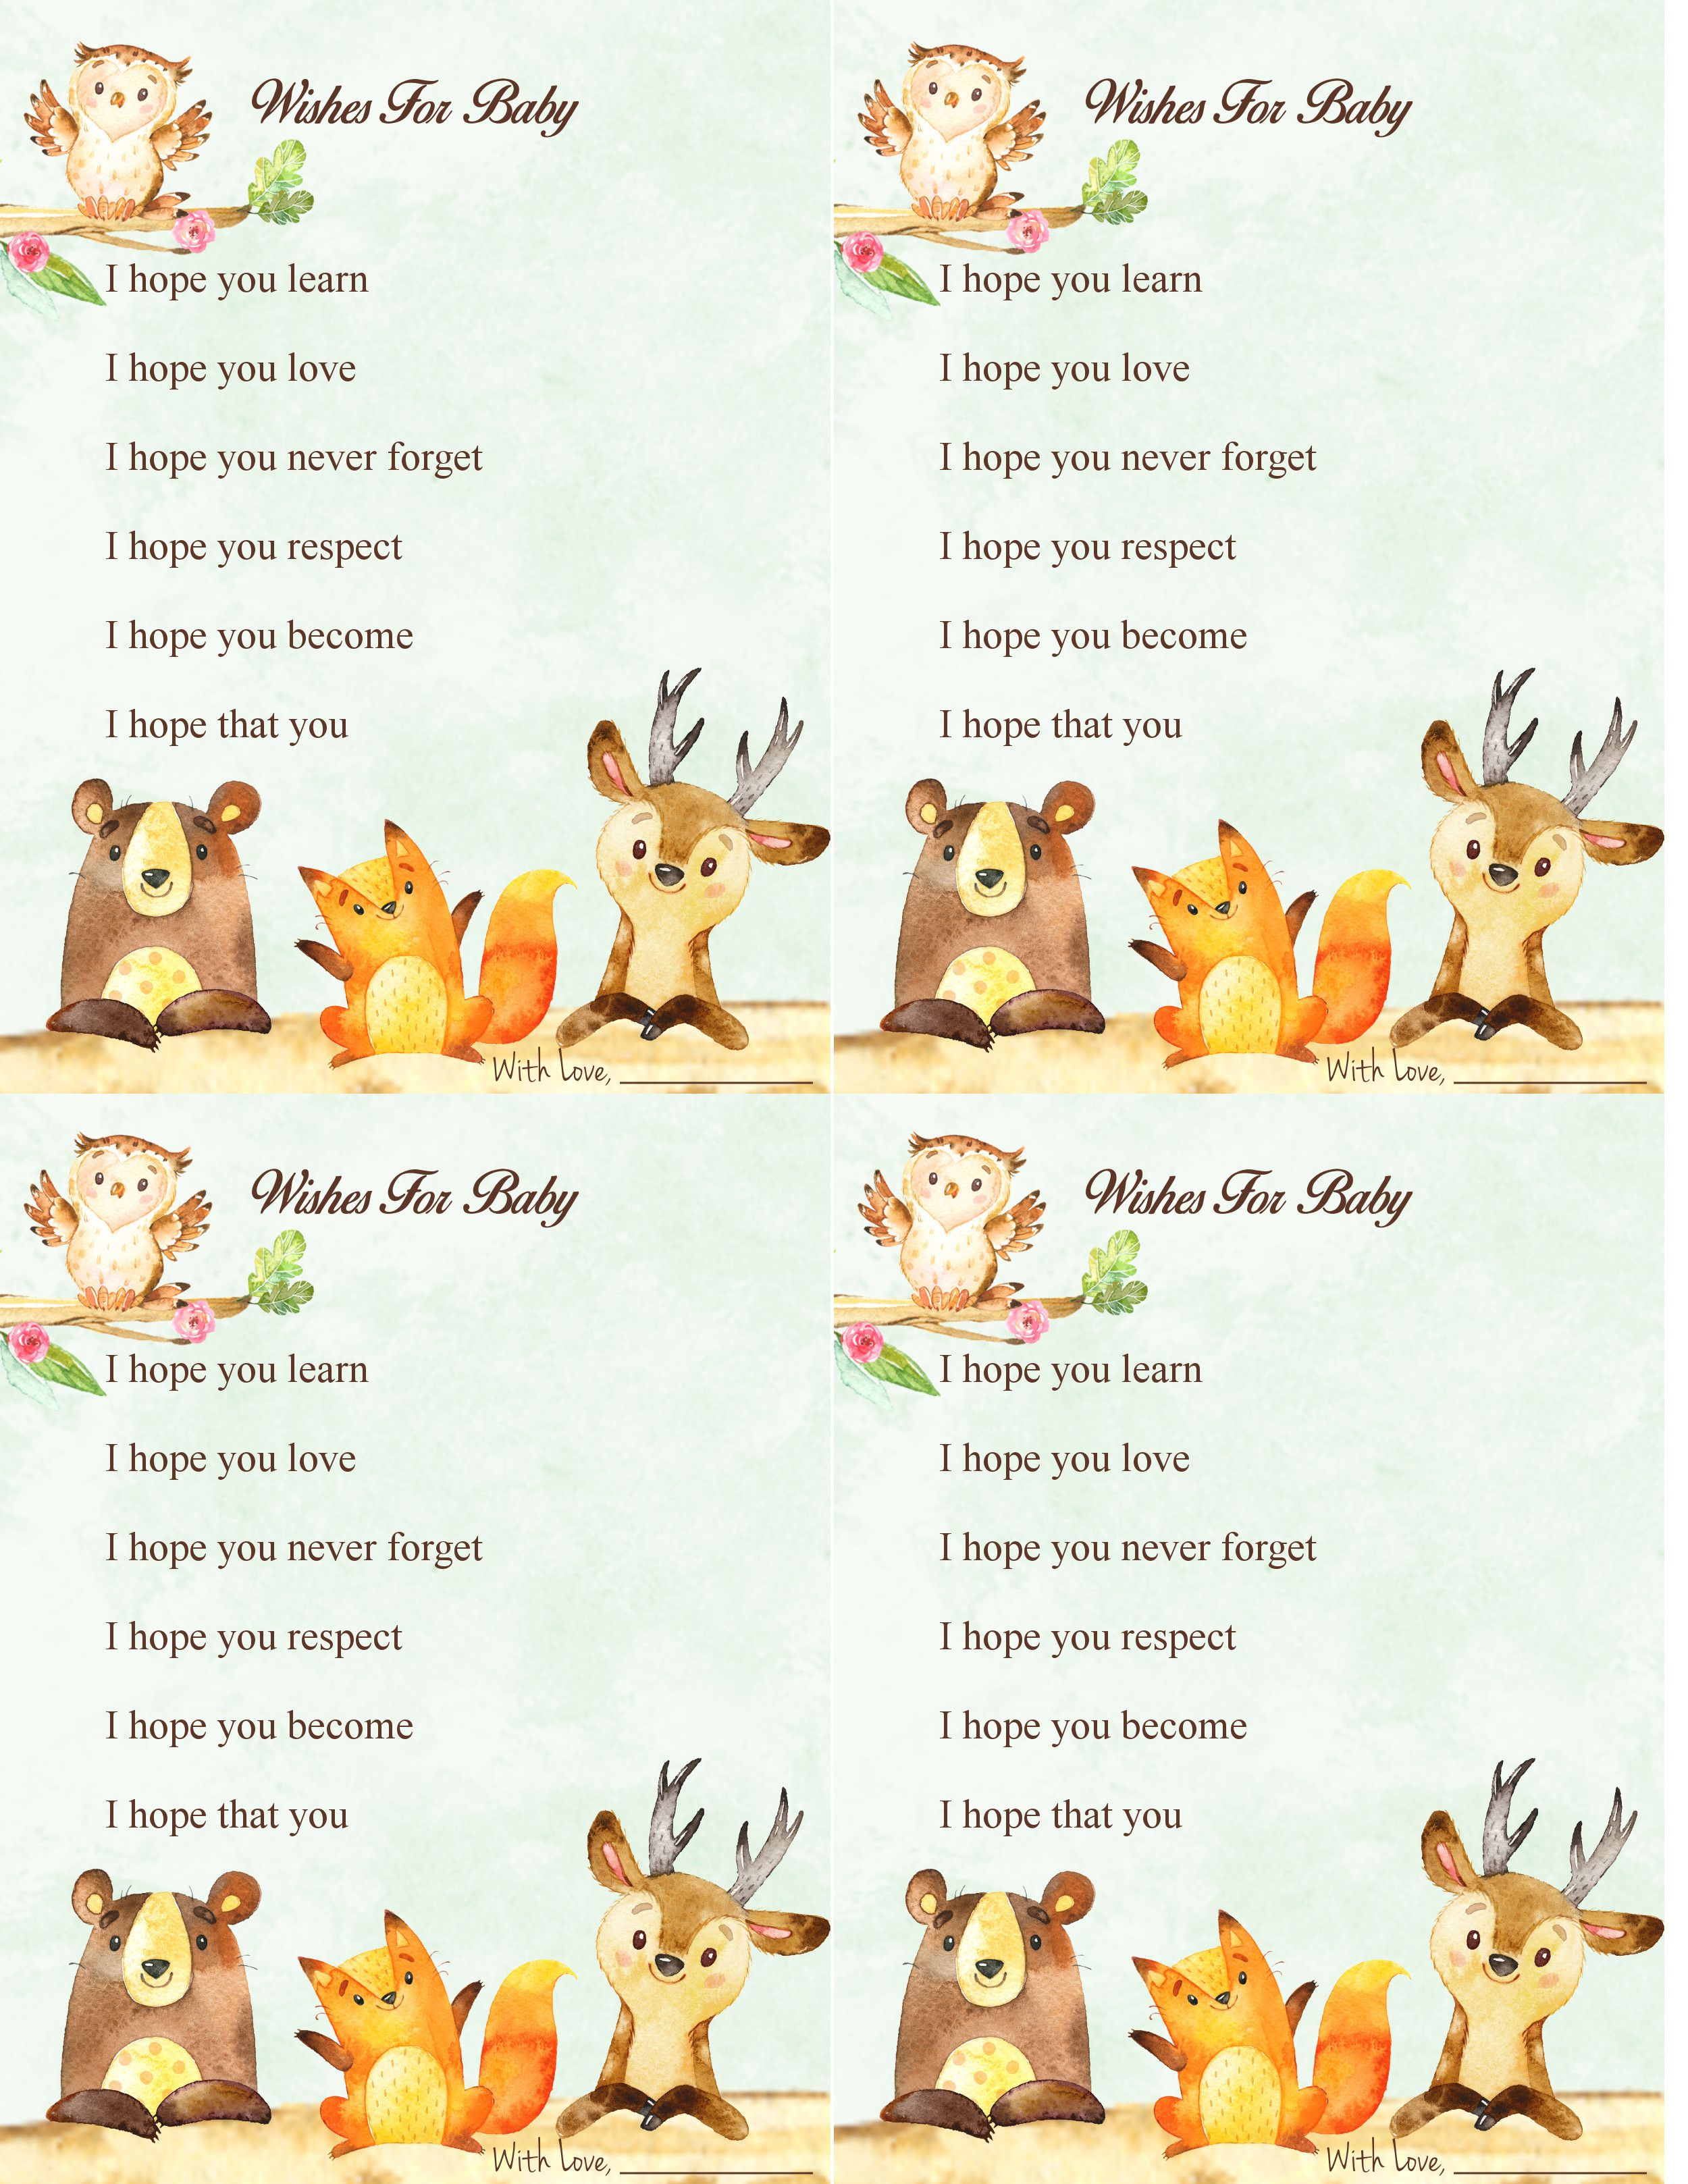 woodland forest animal baby shower game wishes for baby free printable